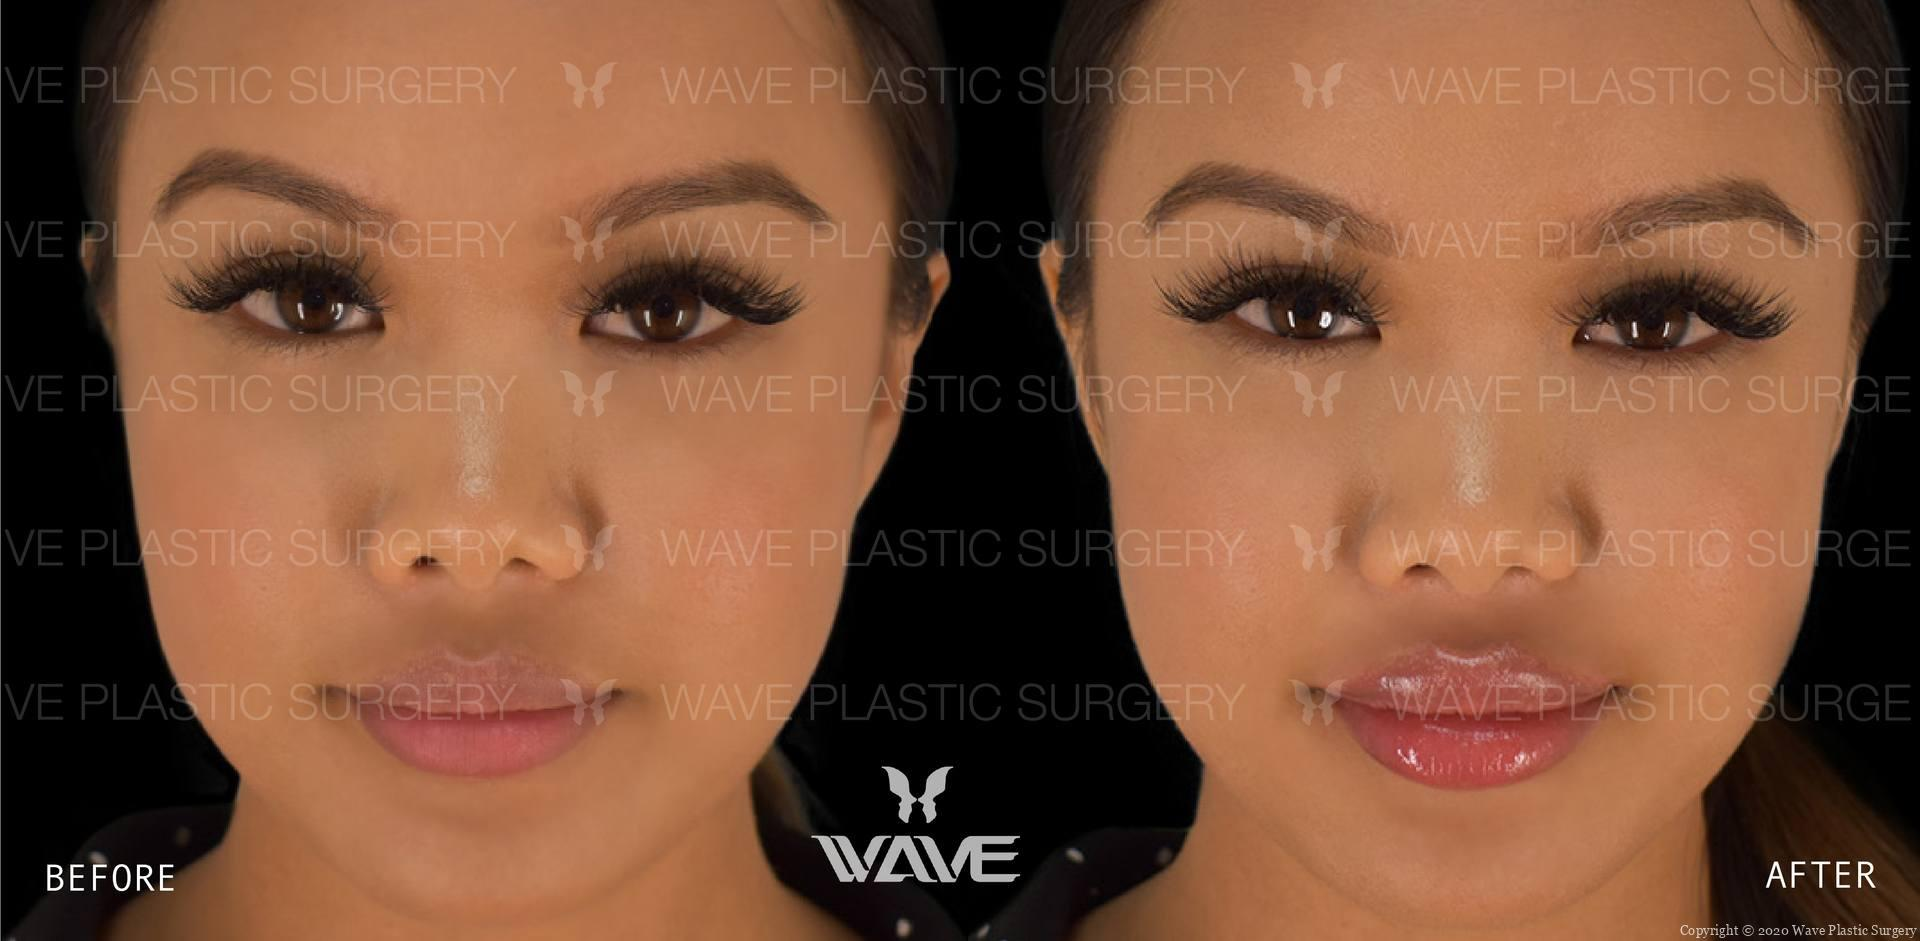 juvederm before and after results